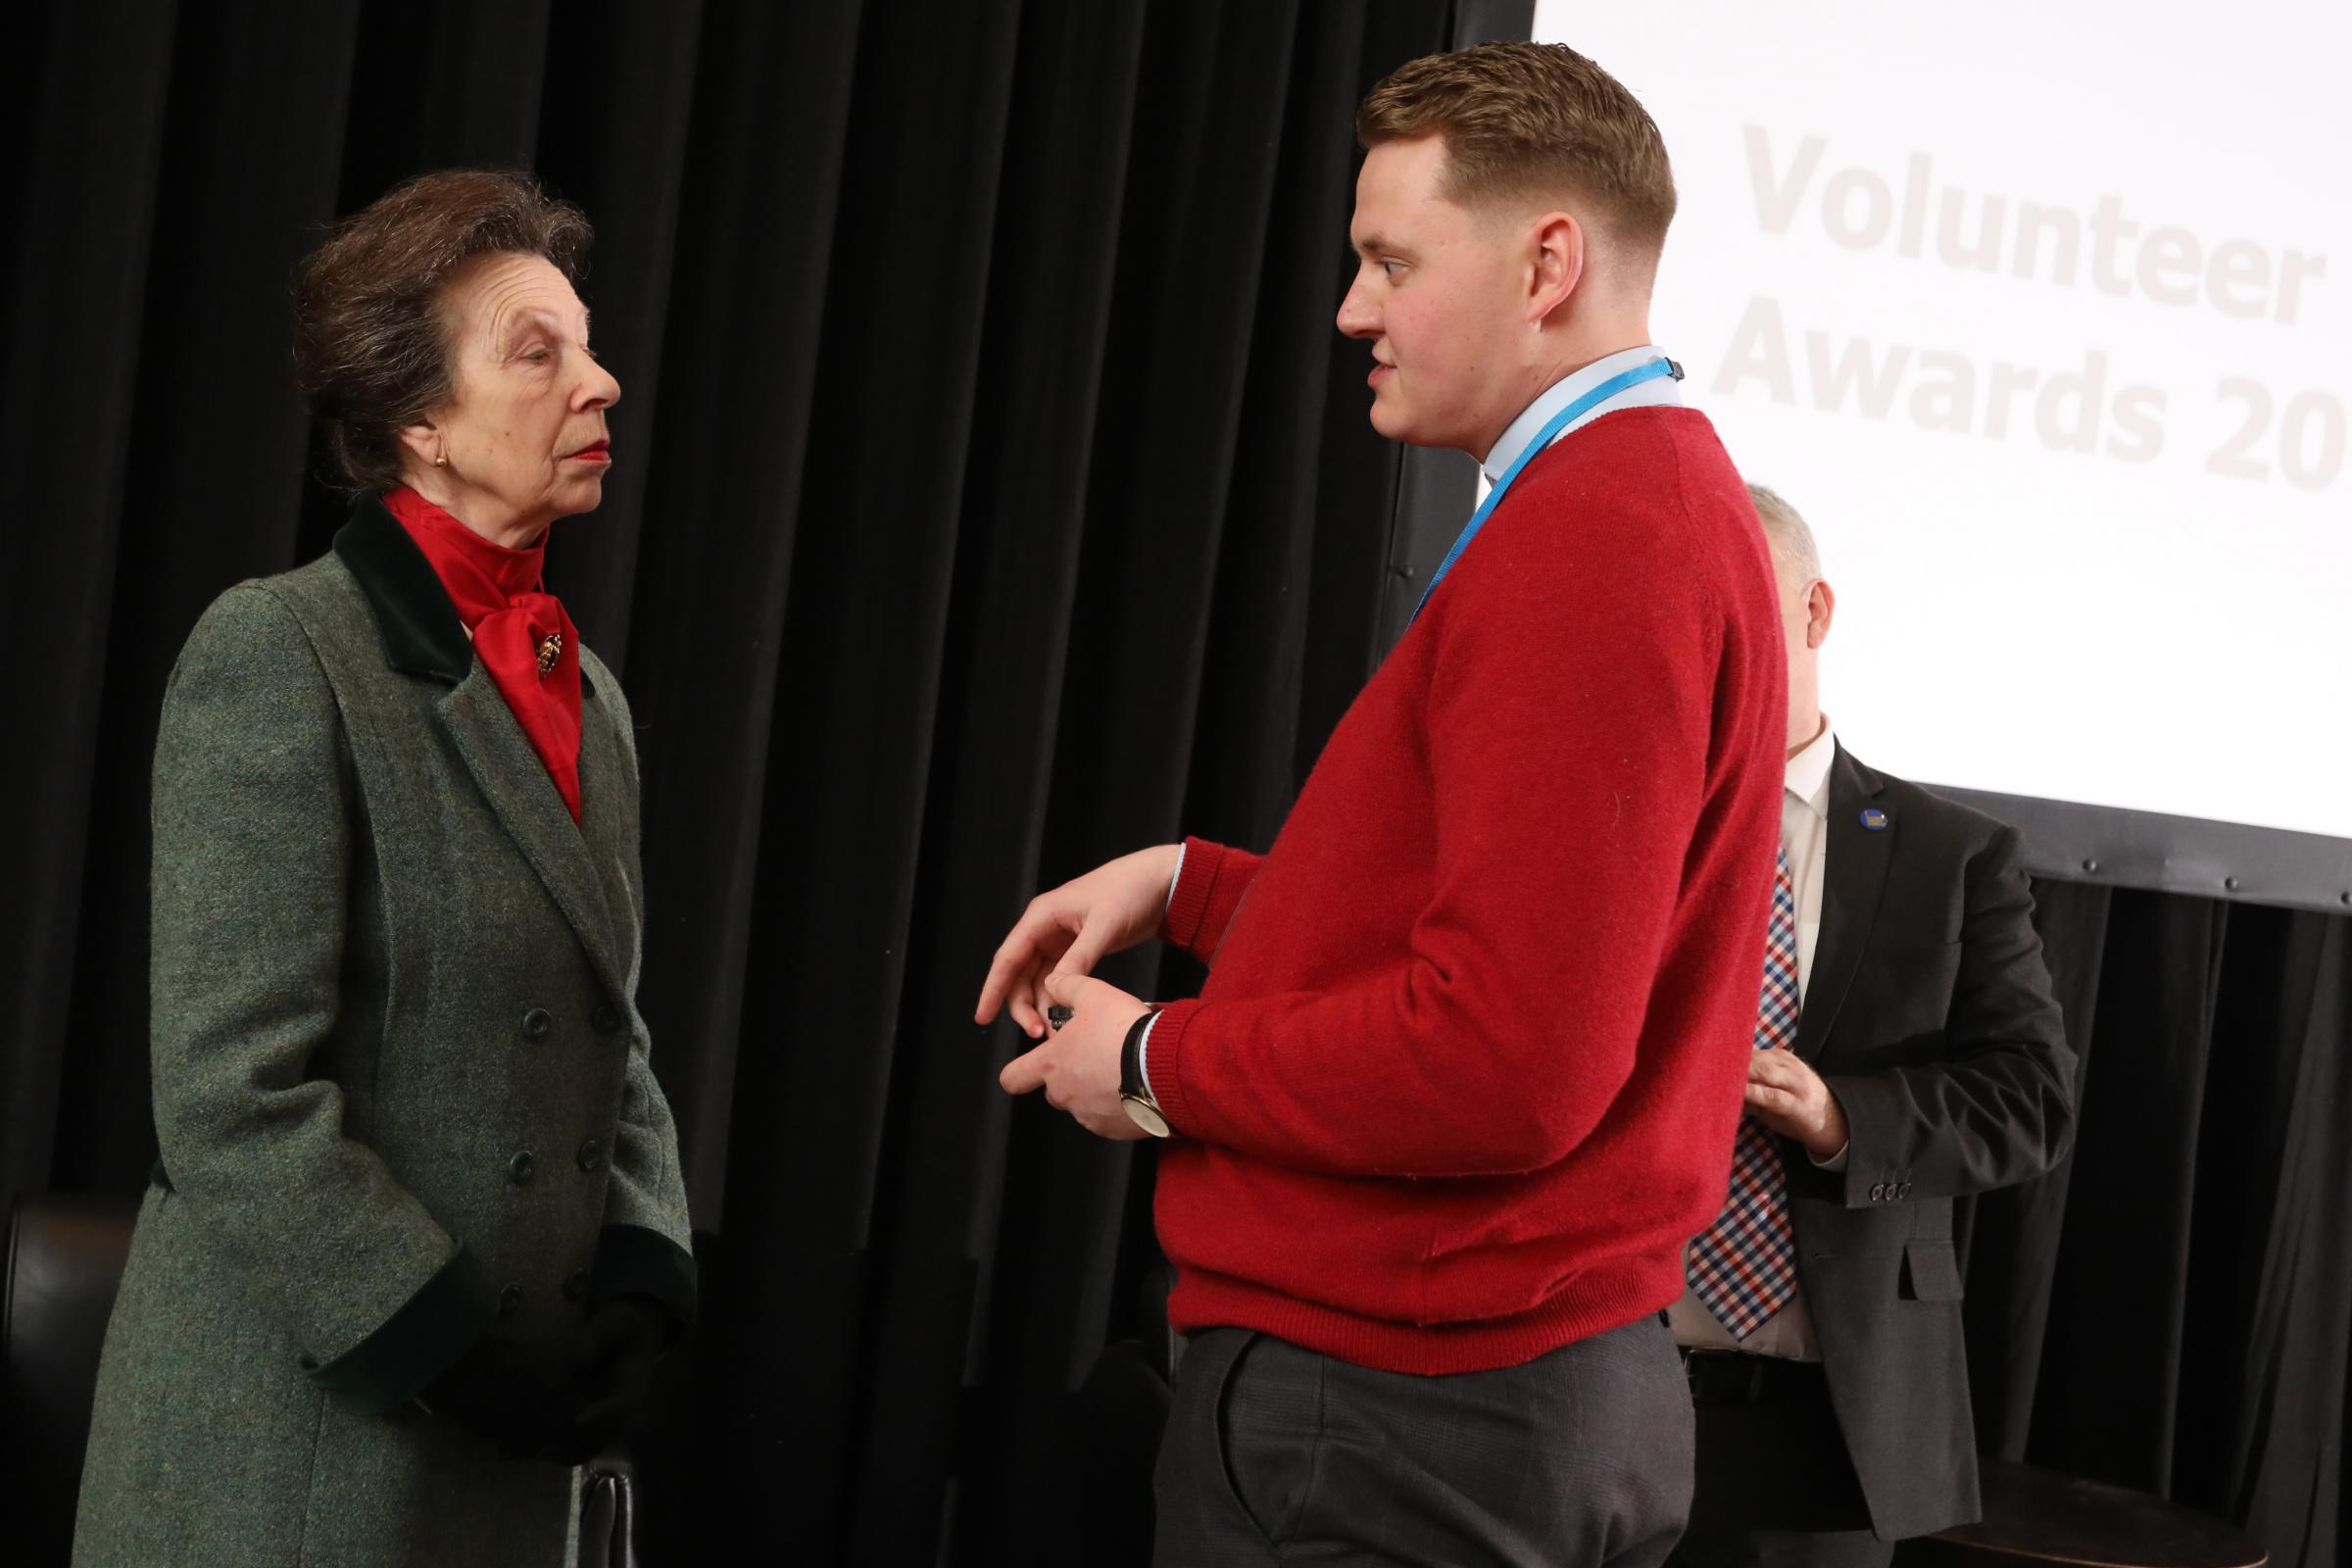 Ewan Imray receiving the award from Princess Anne.